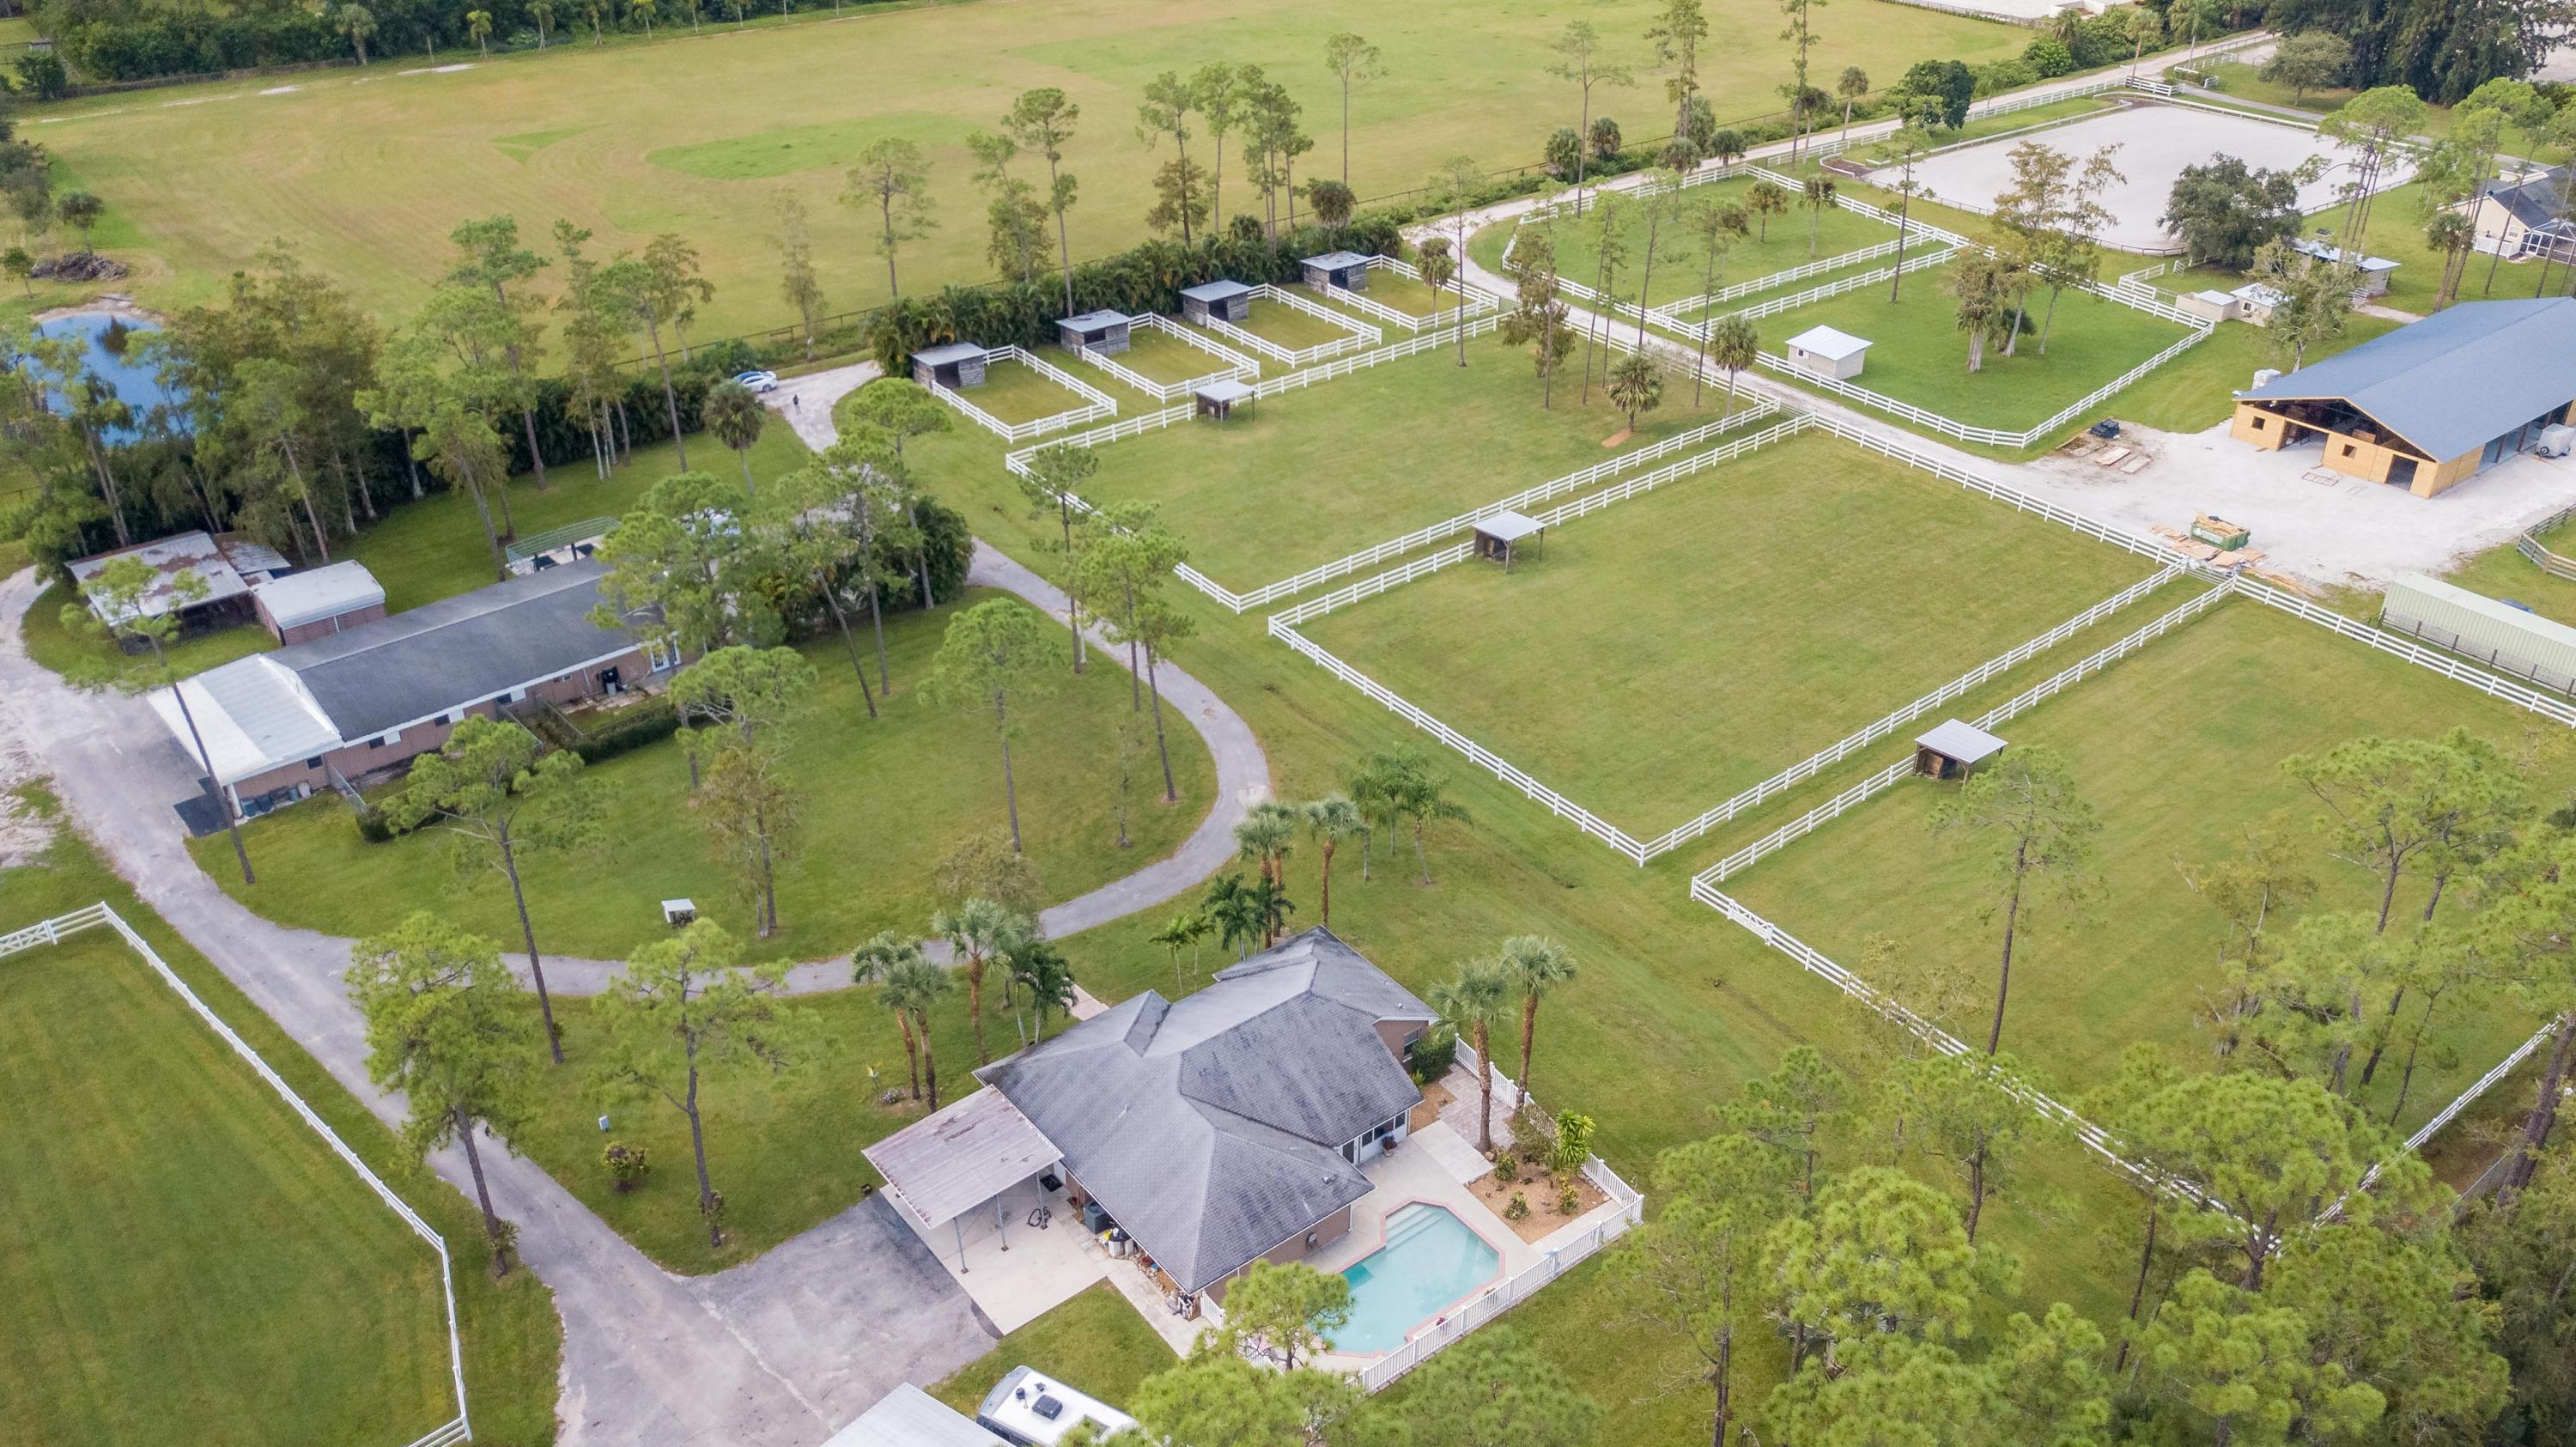 Photo of 13161 11th Lane N, Loxahatchee, FL 33470